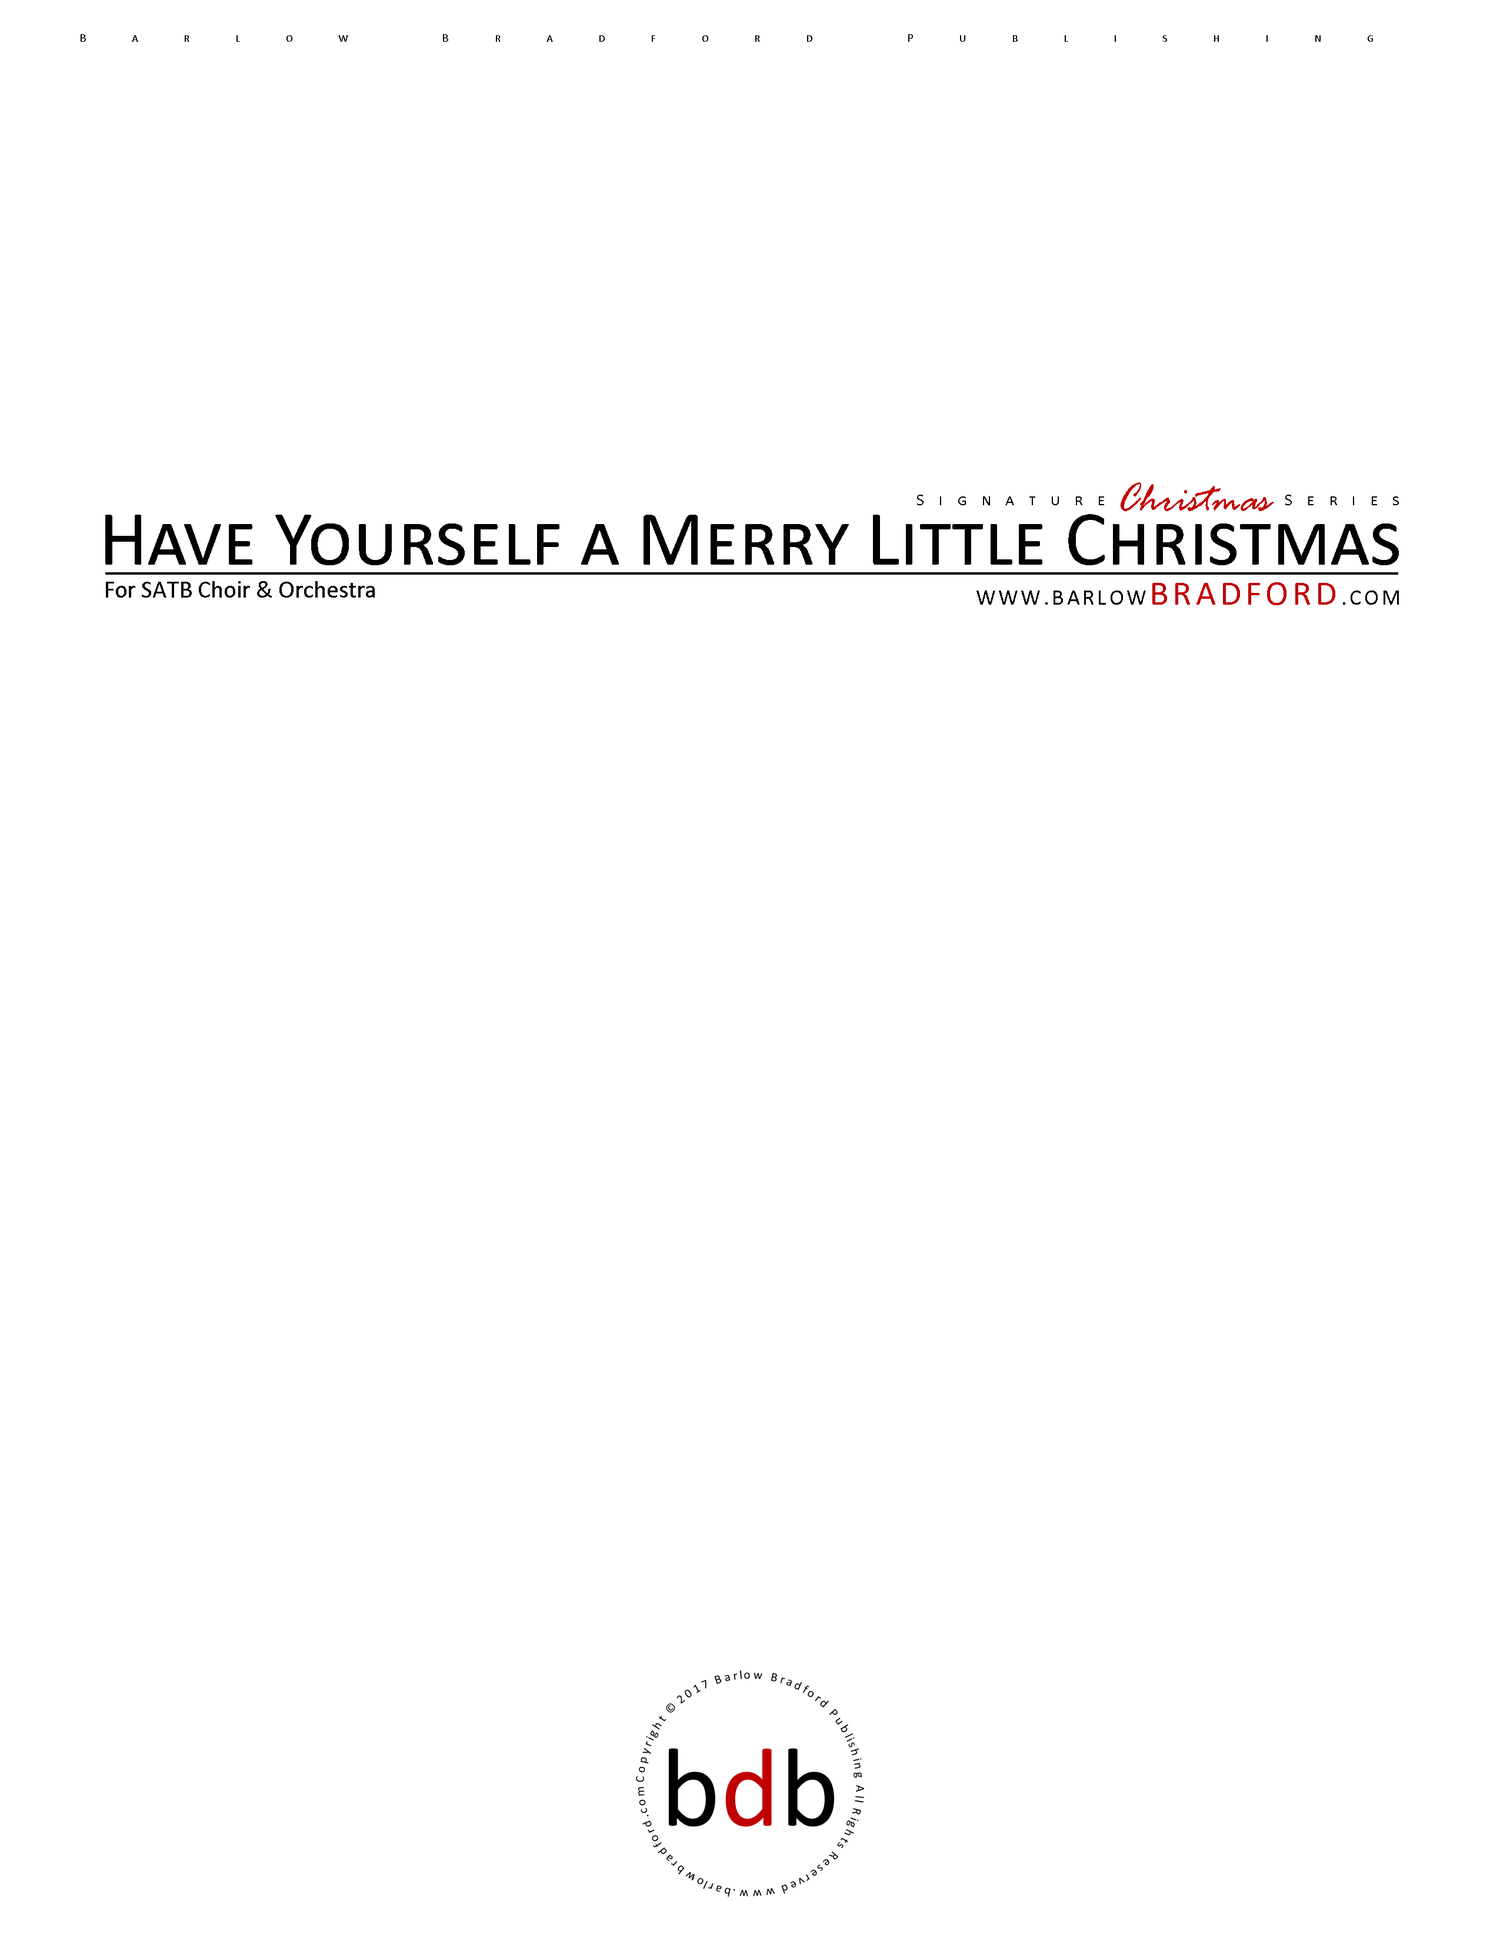 have yourself a merry little christmas cover letterpng - A Merry Little Christmas